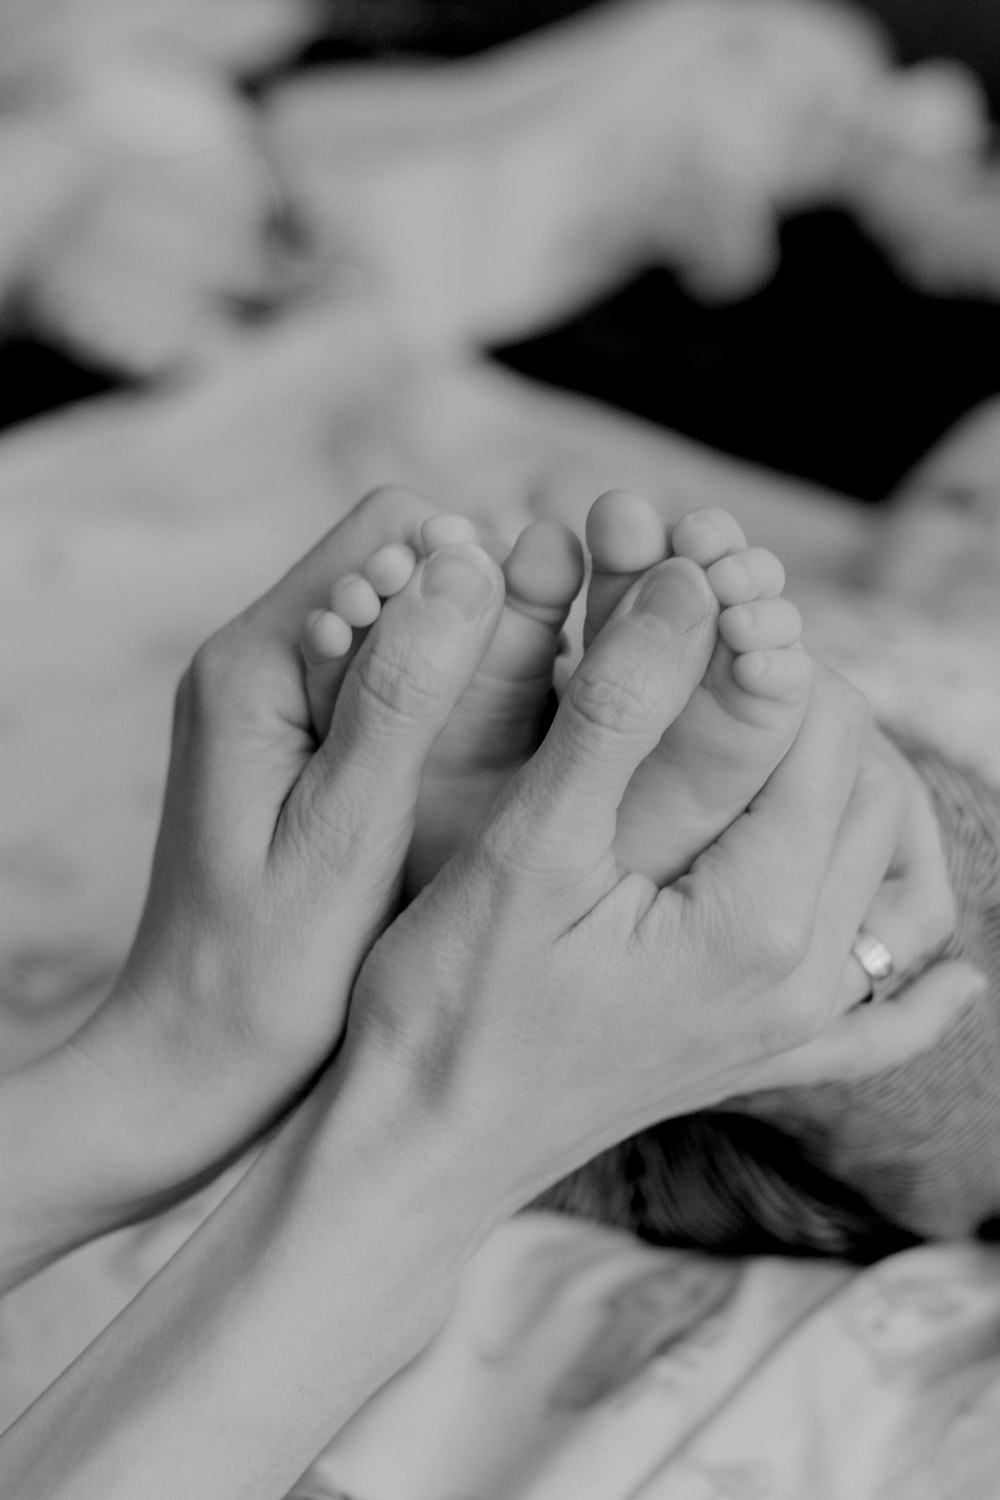 grayscale photo of persons feet